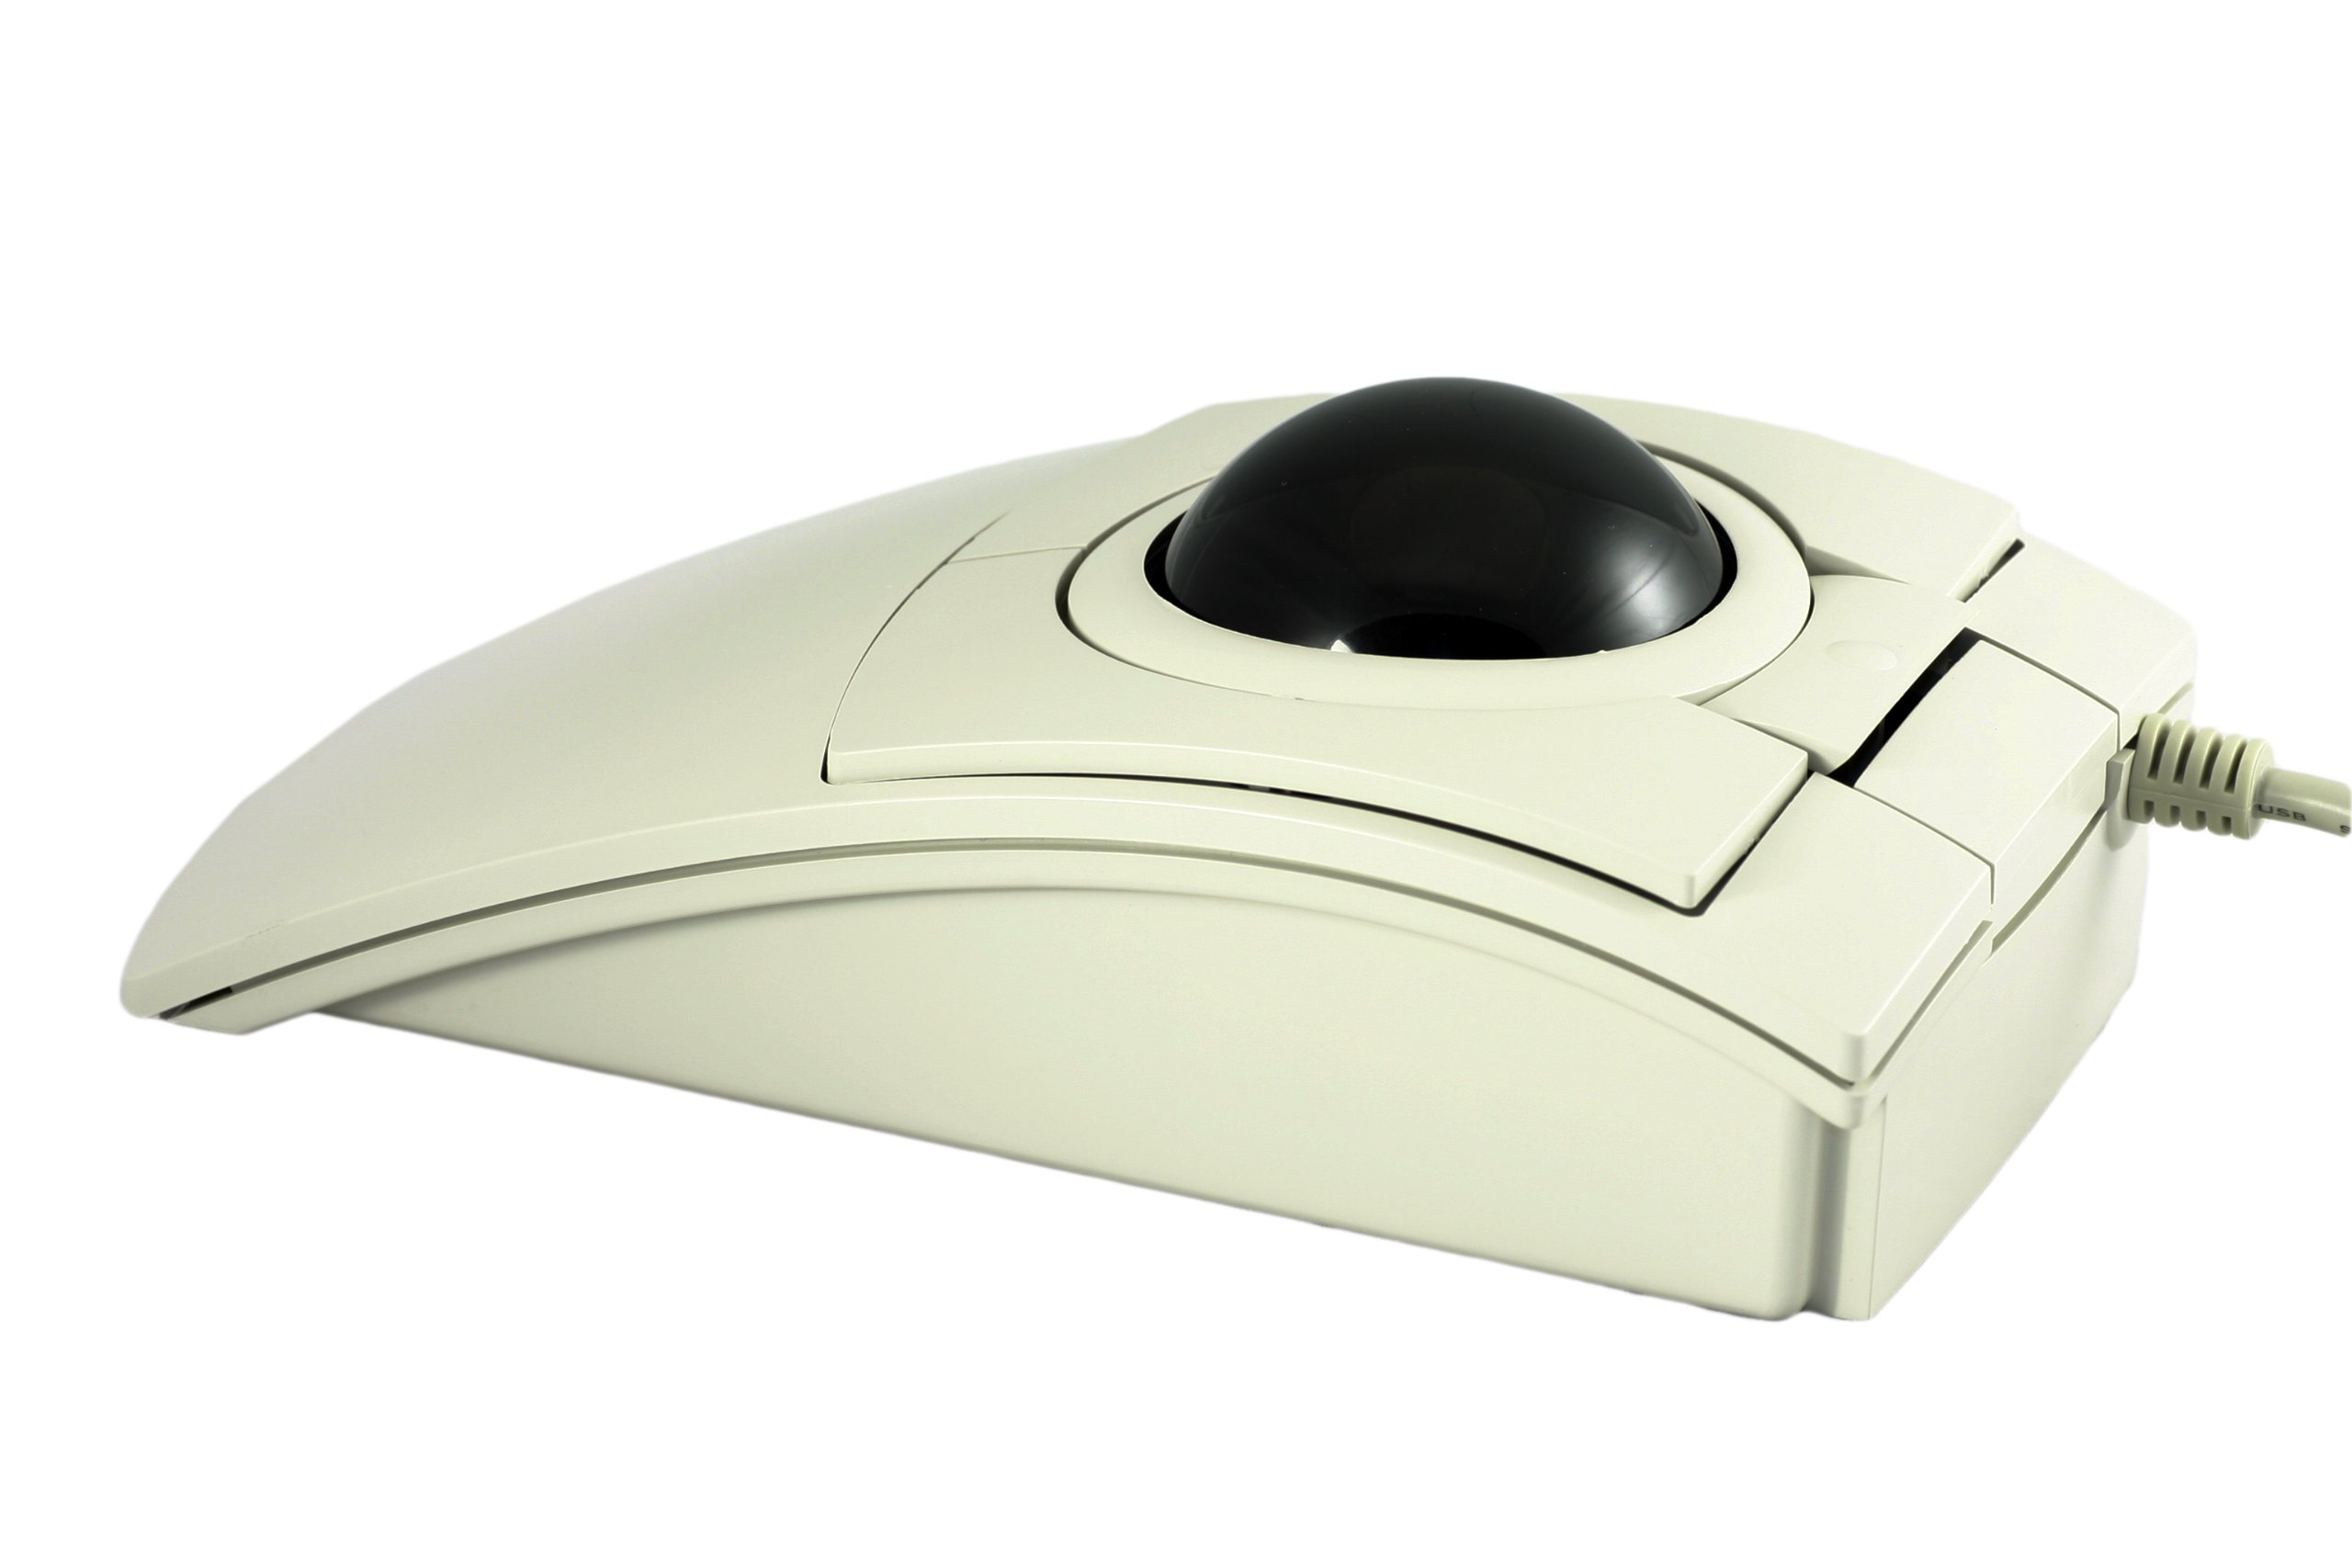 CST1150 USB-PS/2 Wired Ambidextrous Ergonomic Trackball (Beige w/ Black Ball) - Made in the USA